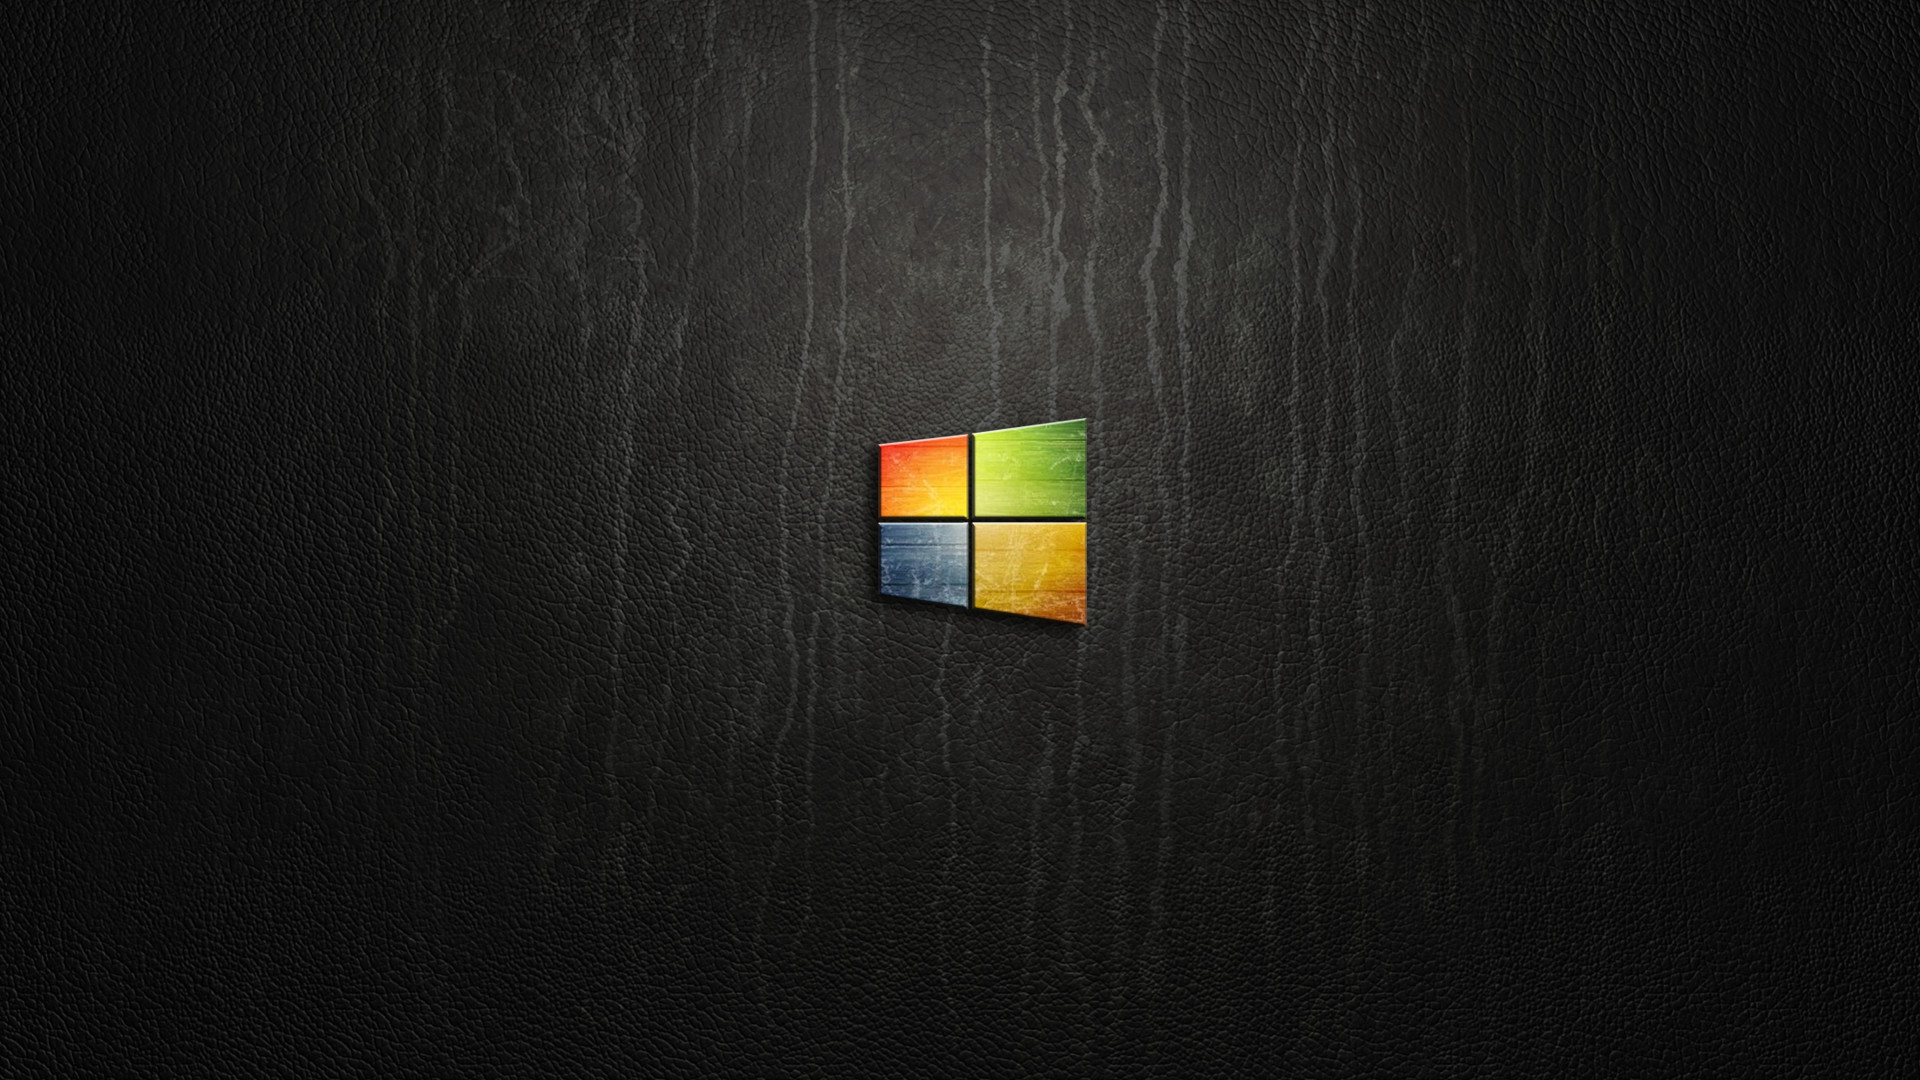 1920x1080 Windows 10 Wallpapers 10